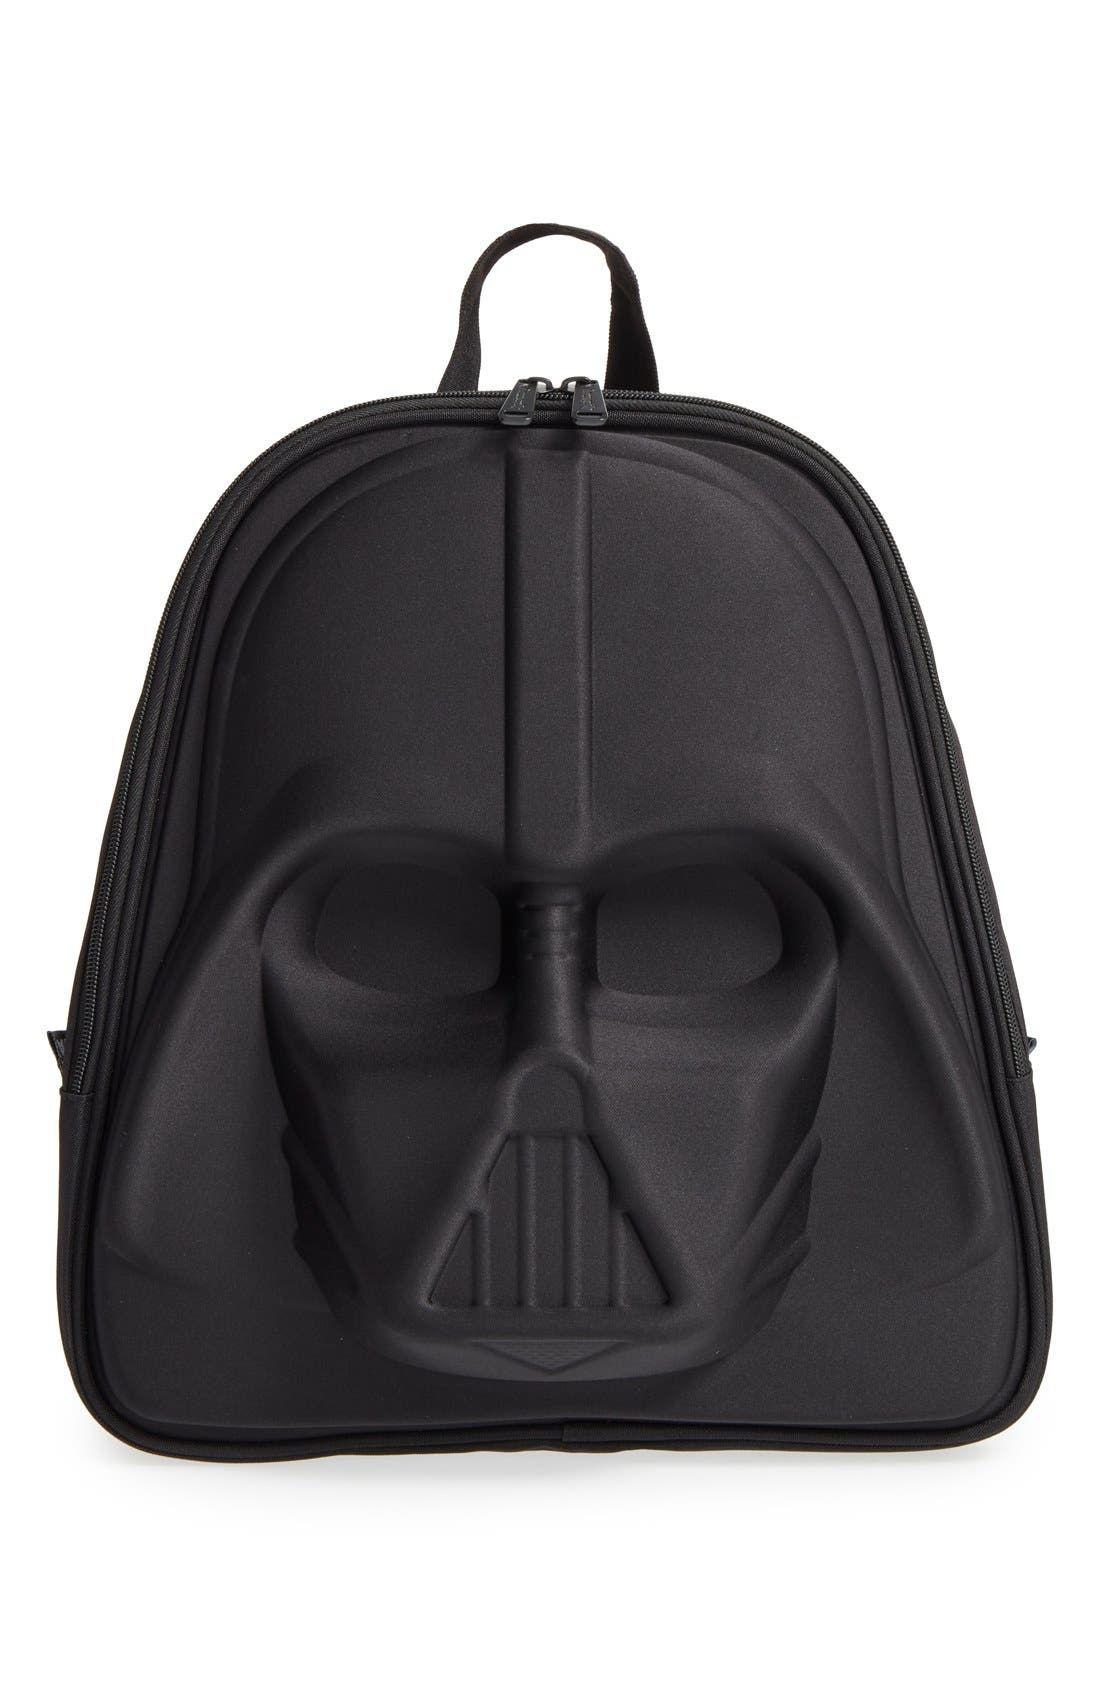 'Star Wars<sup>™</sup> - Darth Vader' Backpack,                             Main thumbnail 1, color,